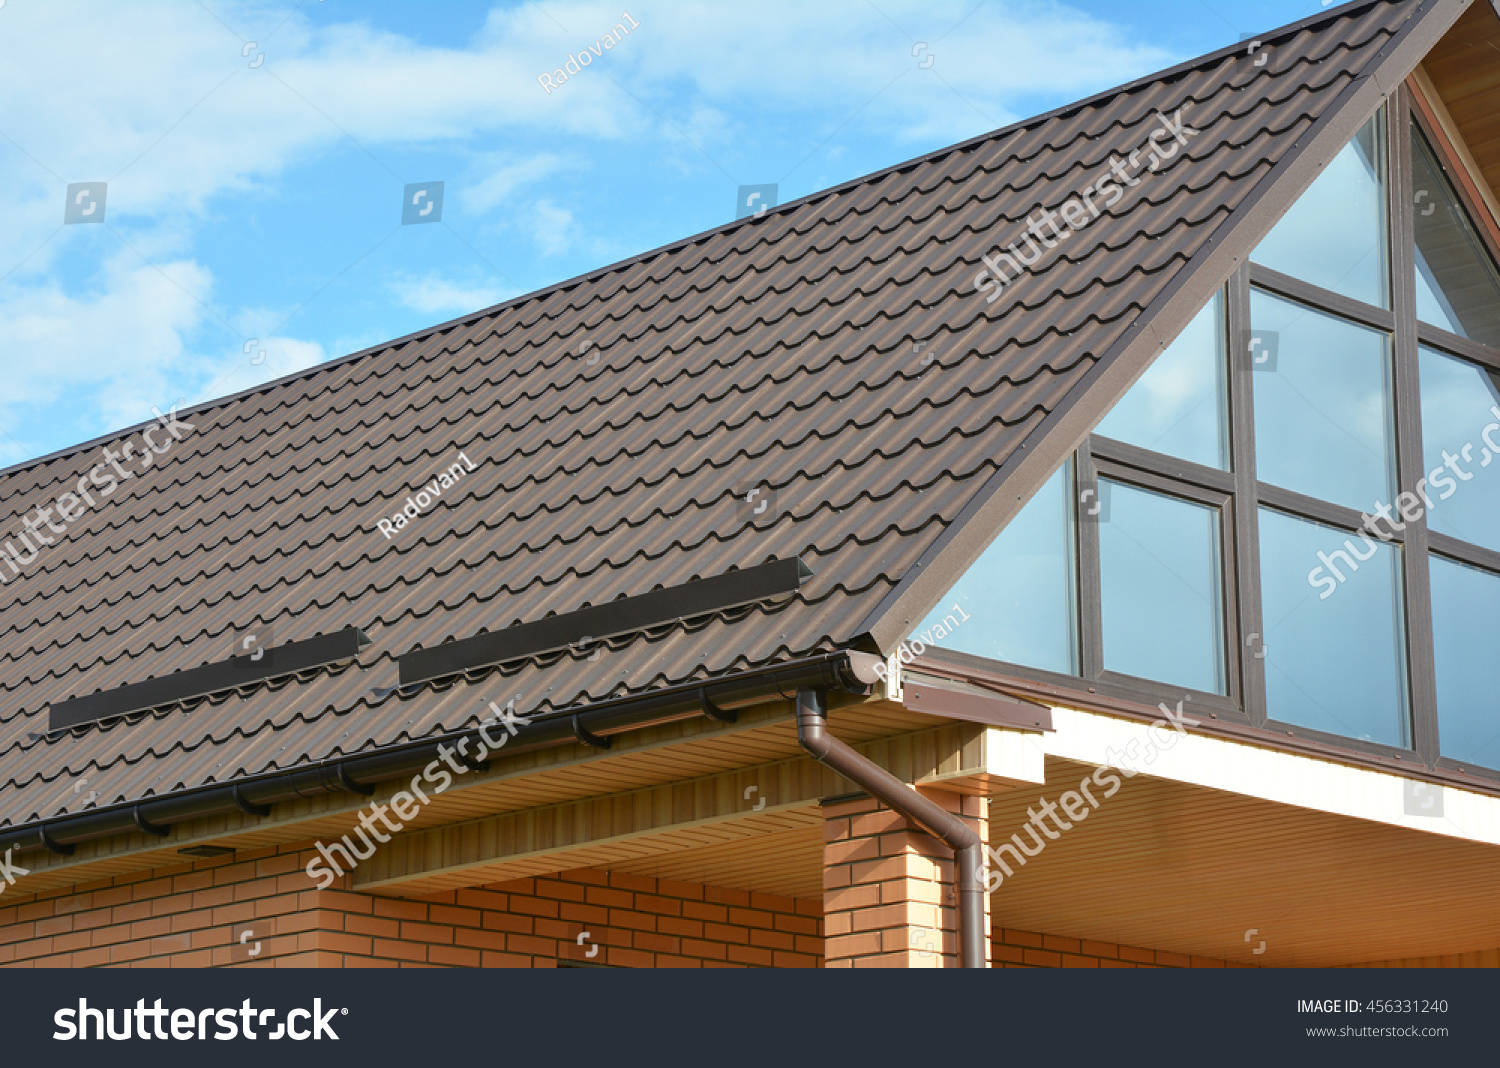 Building Modern House Construction Metal Roof Stock Photo